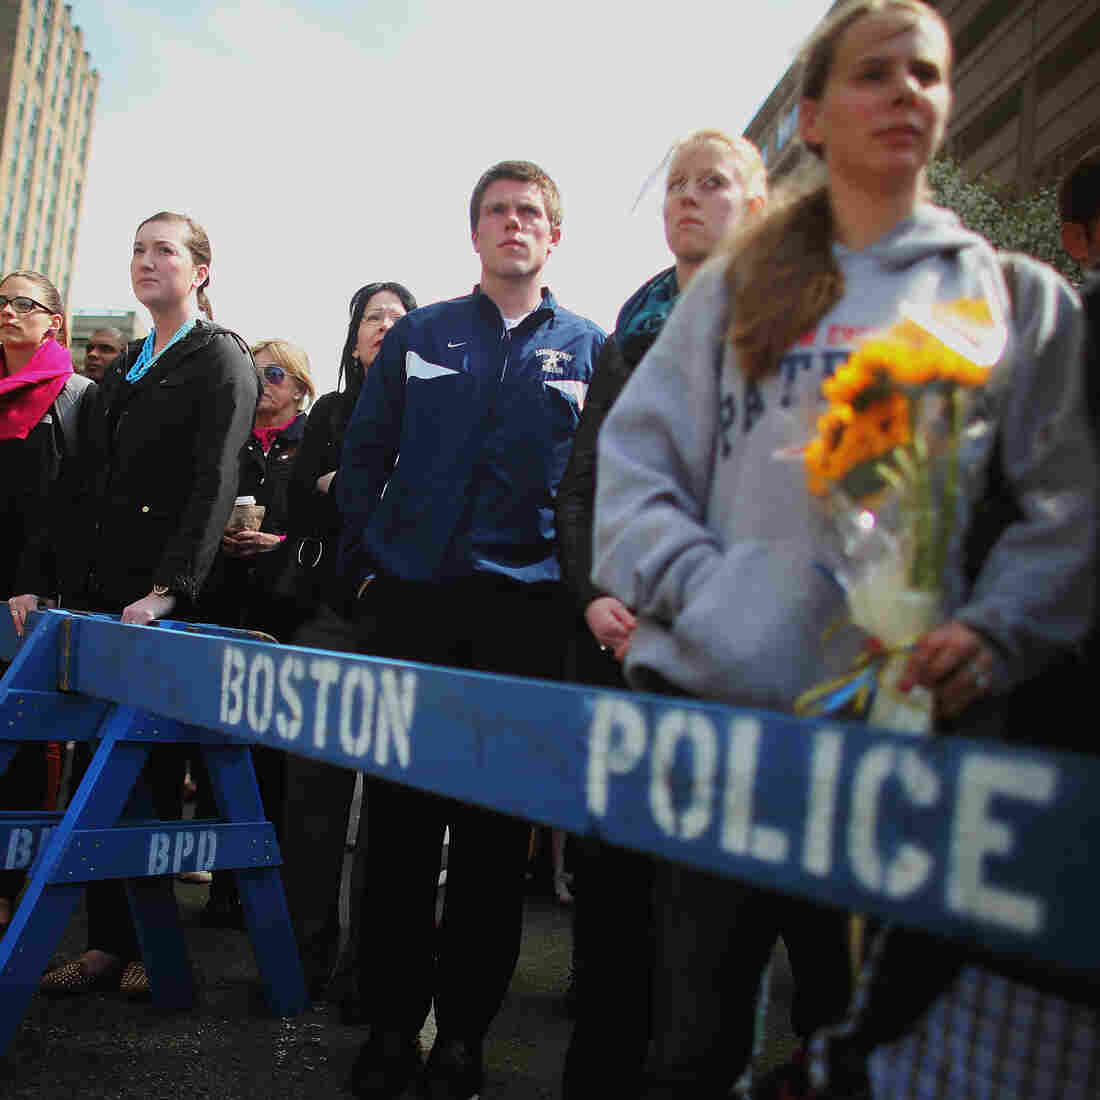 Poll: Public Expects Attacks, But Boston Doesn't Add To Fear